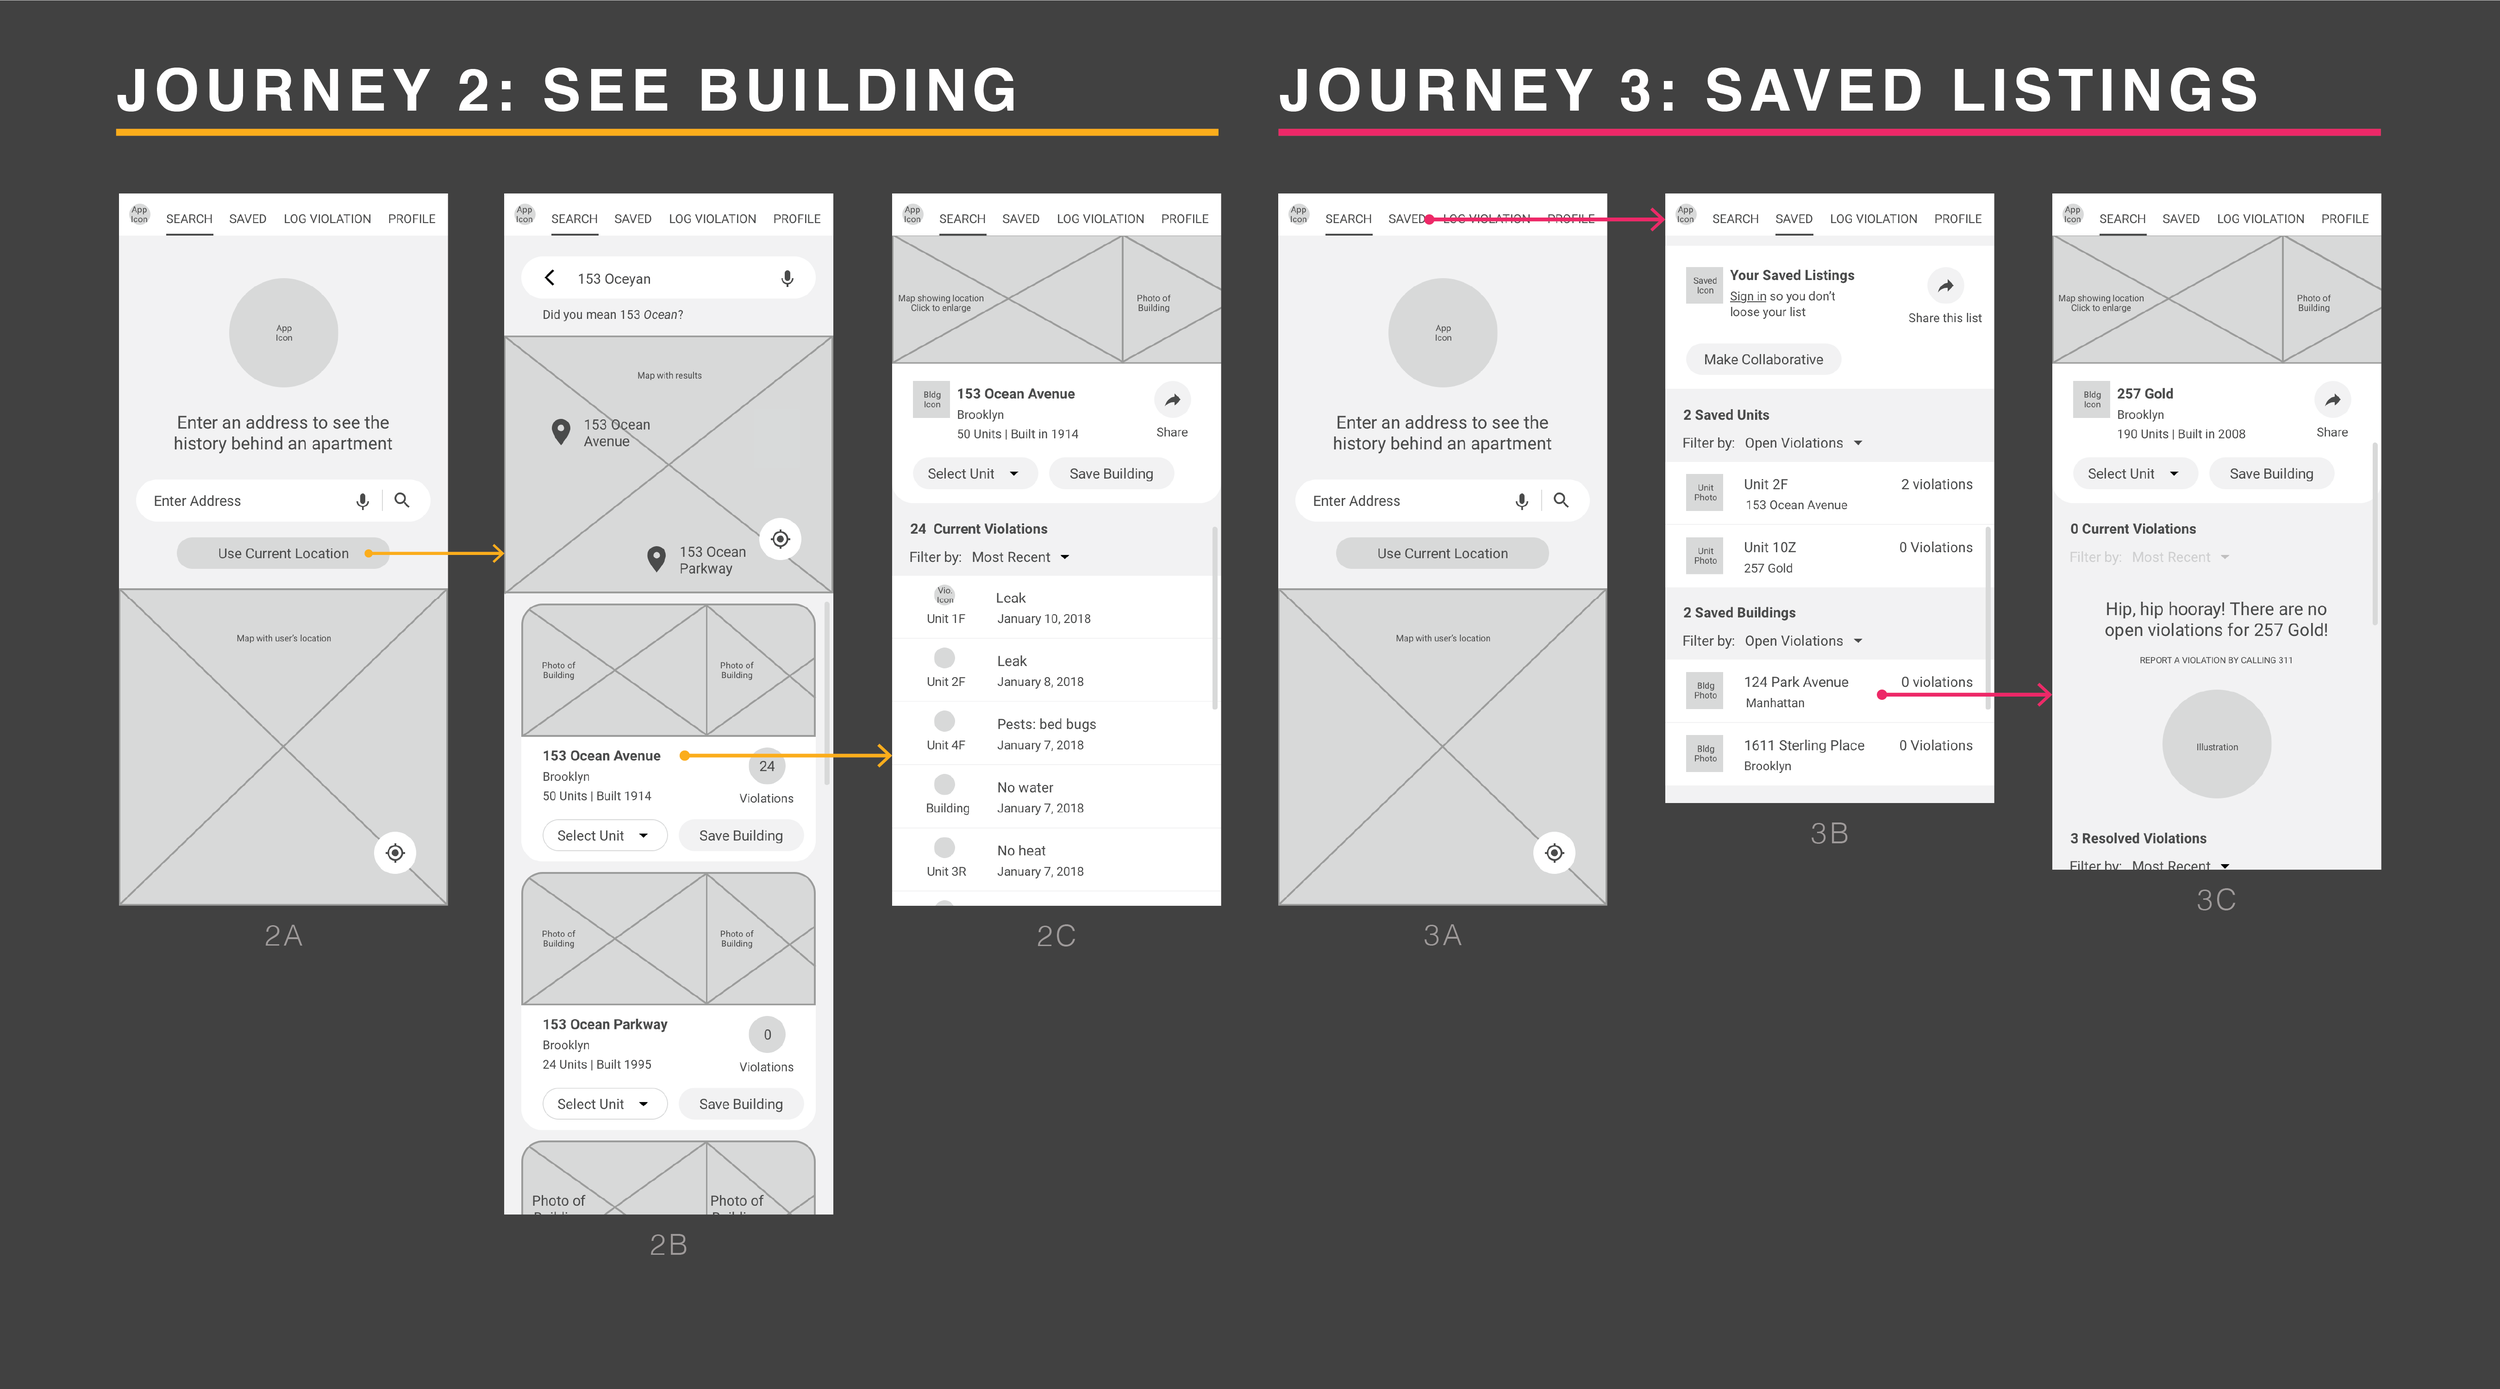 Image 9: Journey 2 explains how a user might view information about a building. Journey 3 shows how a users can access saved listings.